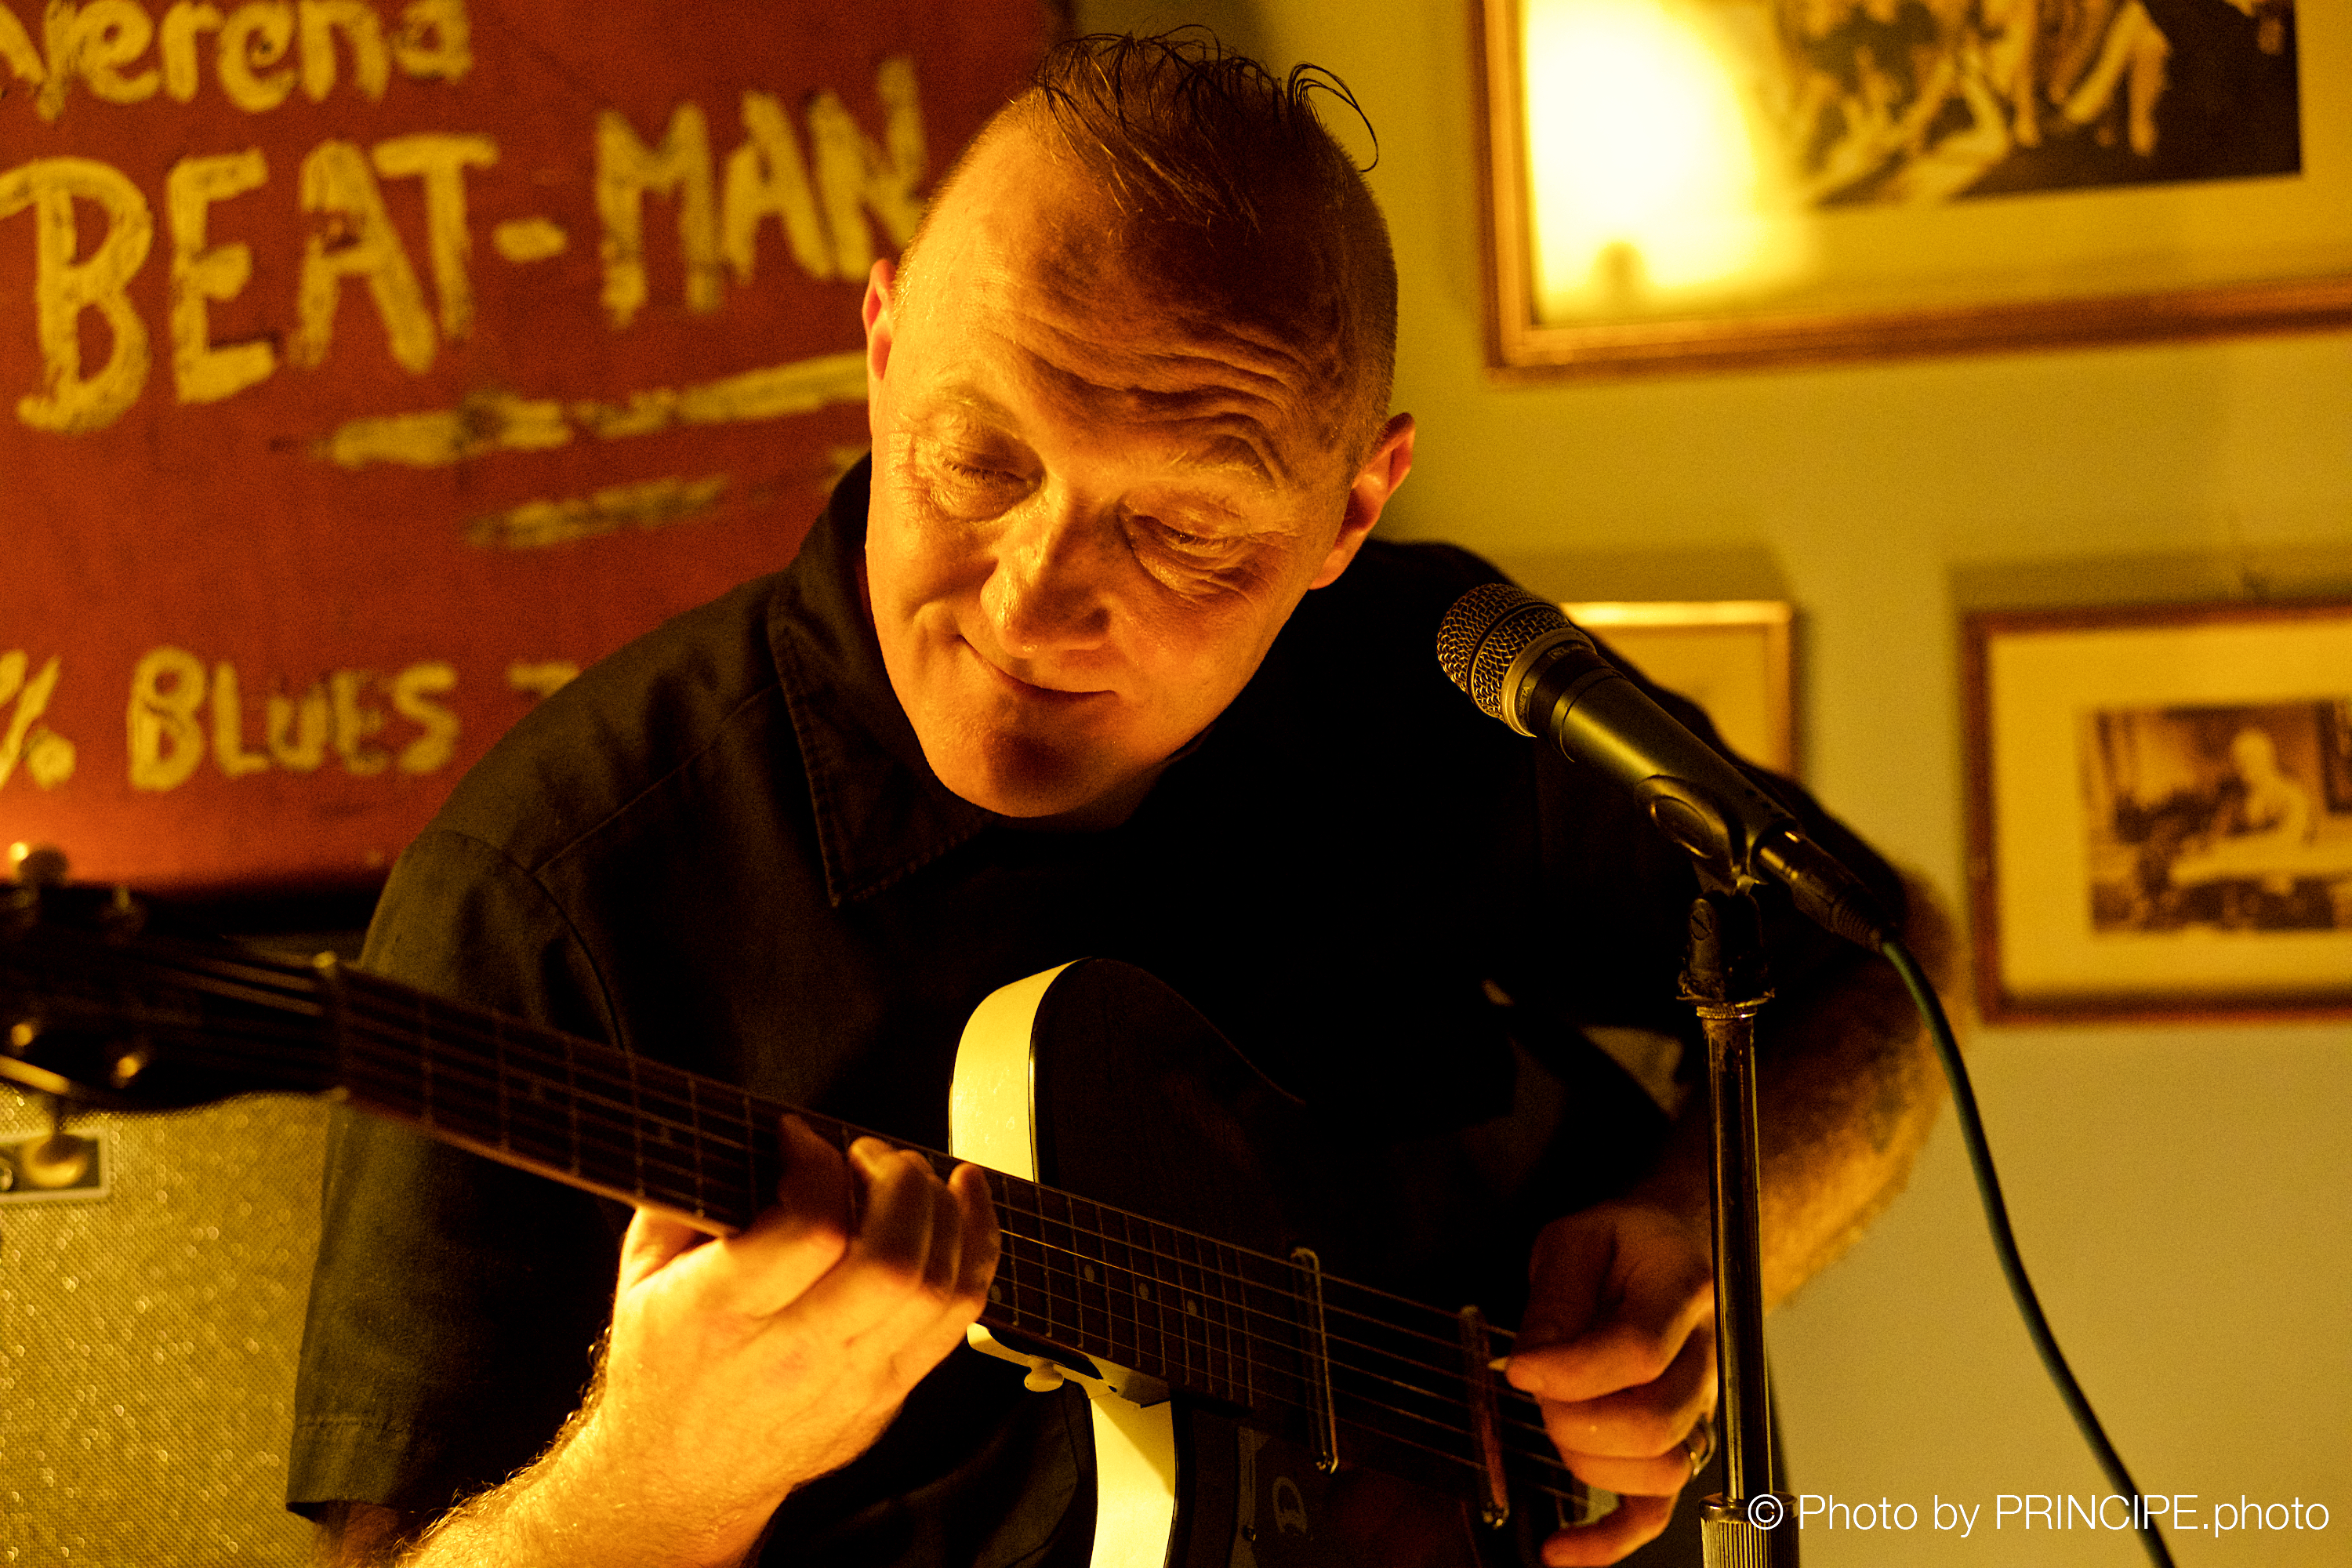 Reverend Beat-Man @ Caffé Bar Sattler